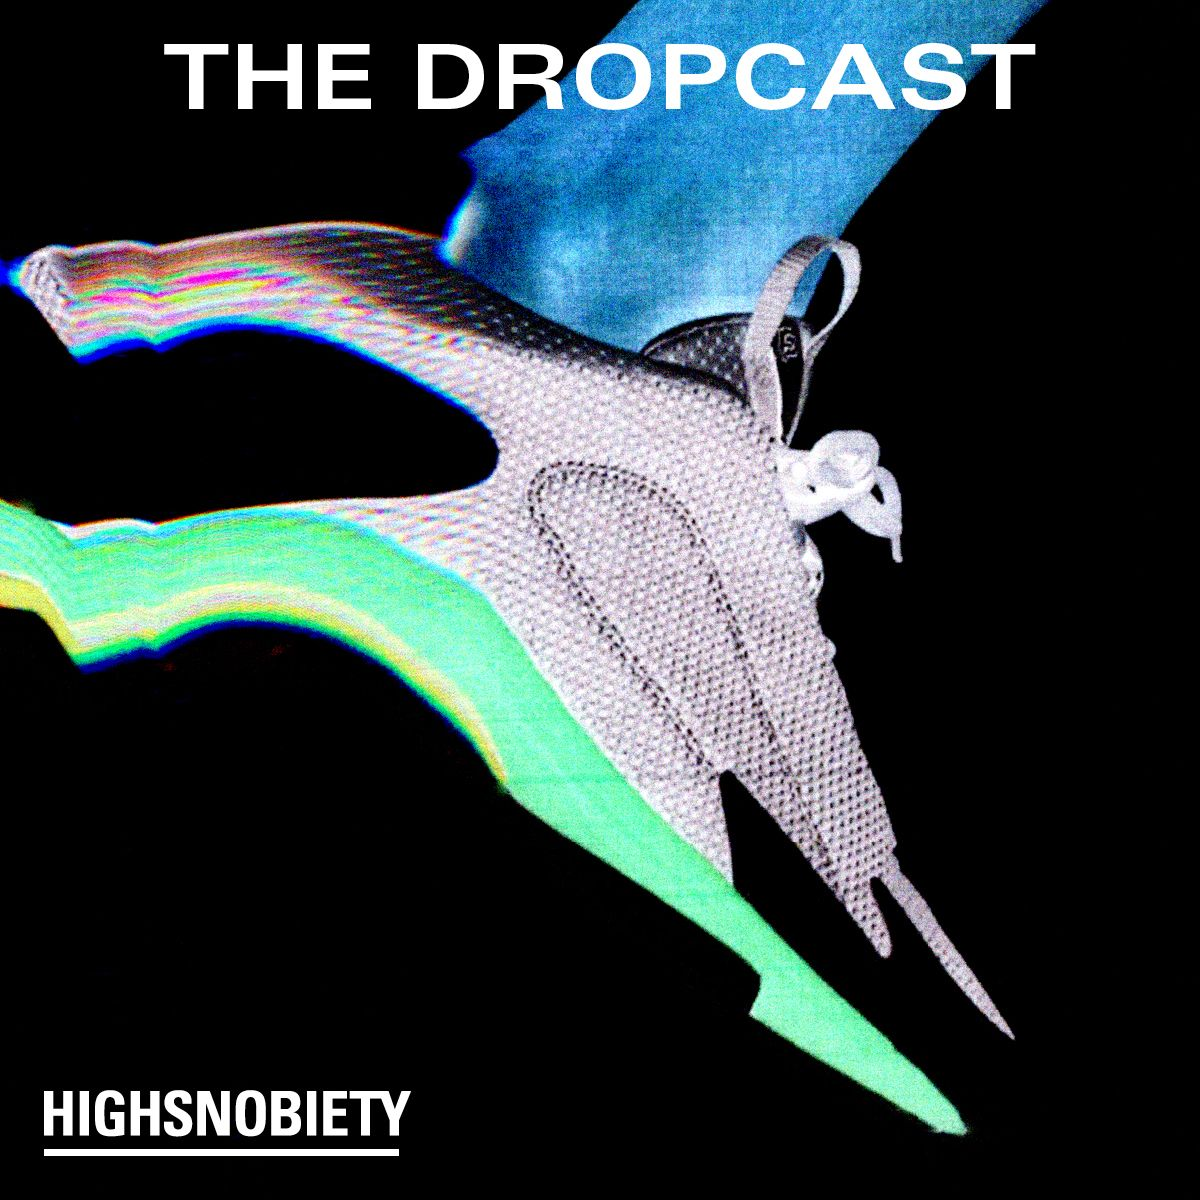 The Dropcast 60 Fuccbois Ii Fuccmen Feat Guillaume Philibert Of Filling Pieces The Dropcast Podcast Podtail Dear winter bloody fiegs by westside gunn sampled galt macdermot's cathedral. podtail